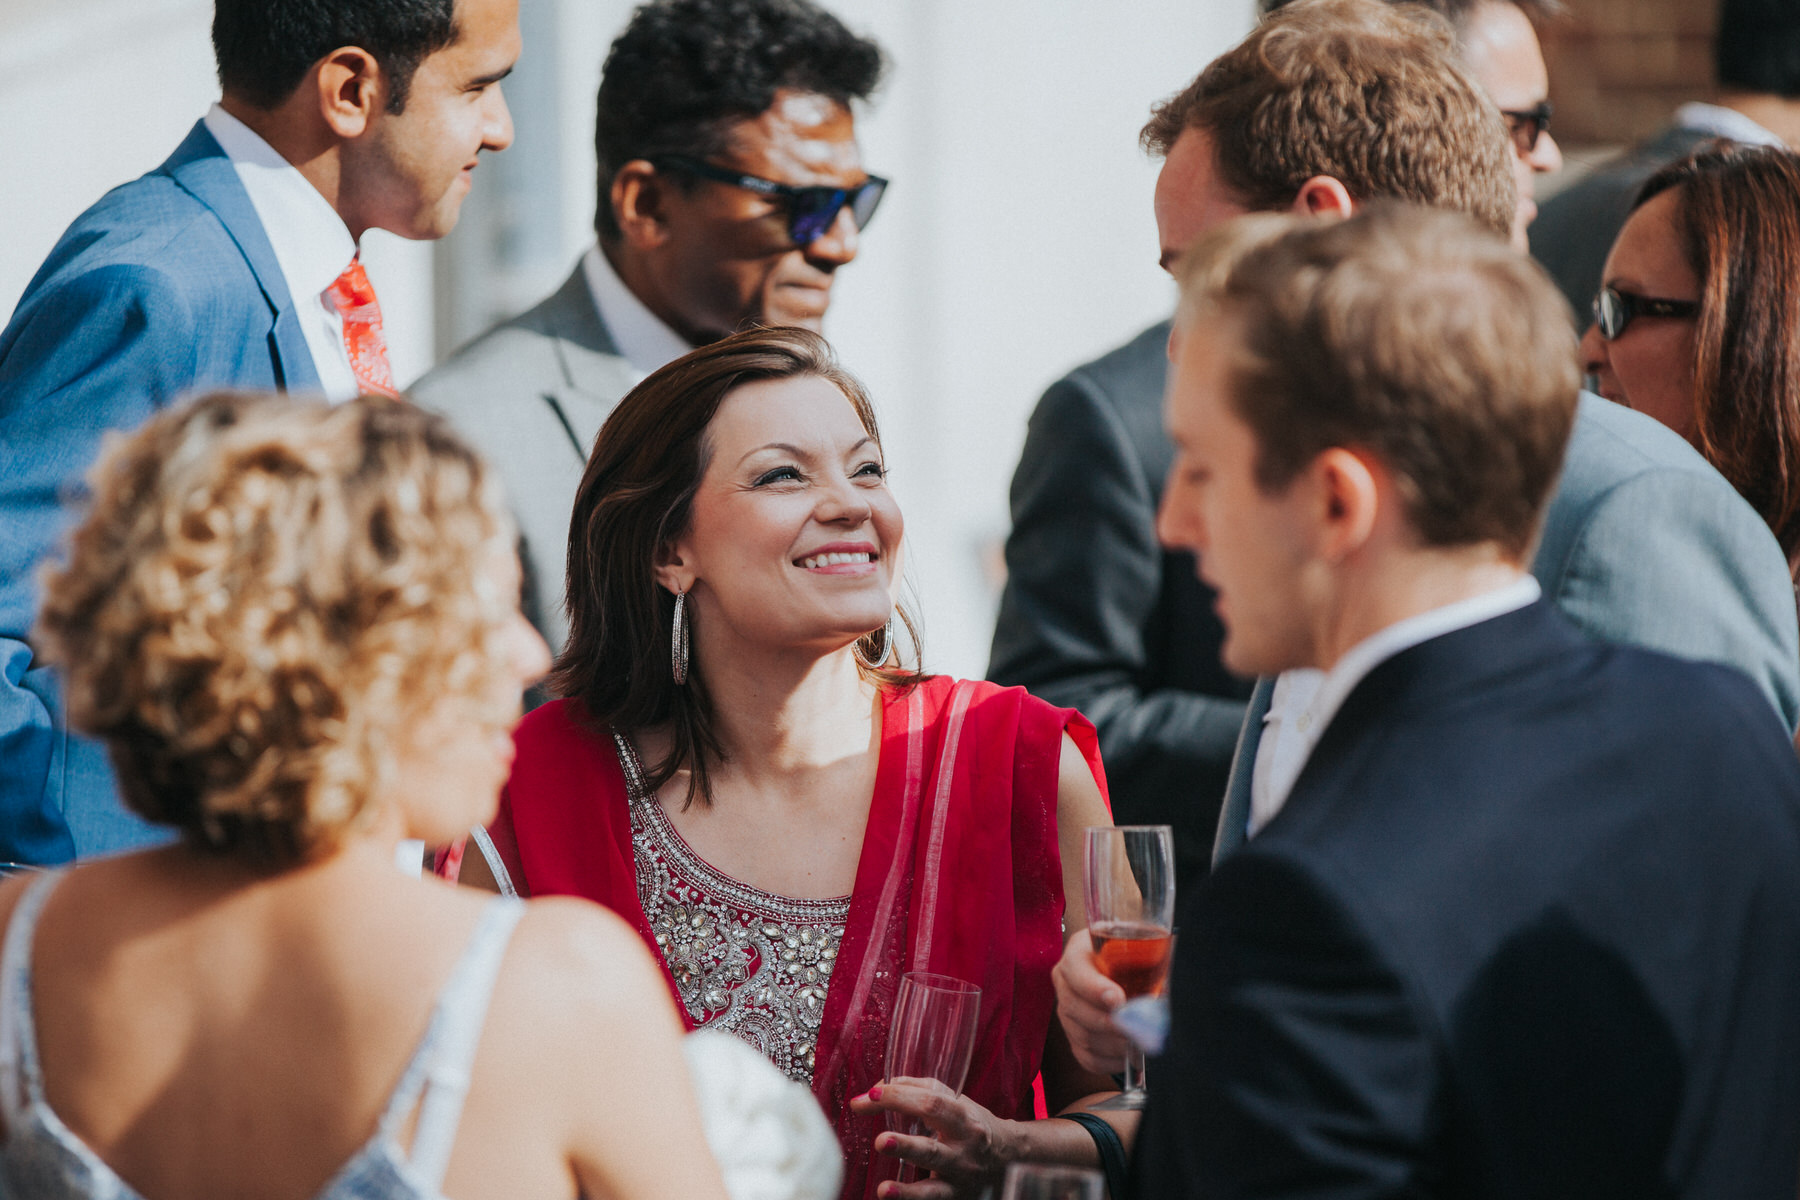 109-Anglo-Asian-London-Wedding-guest-reportage.jpg